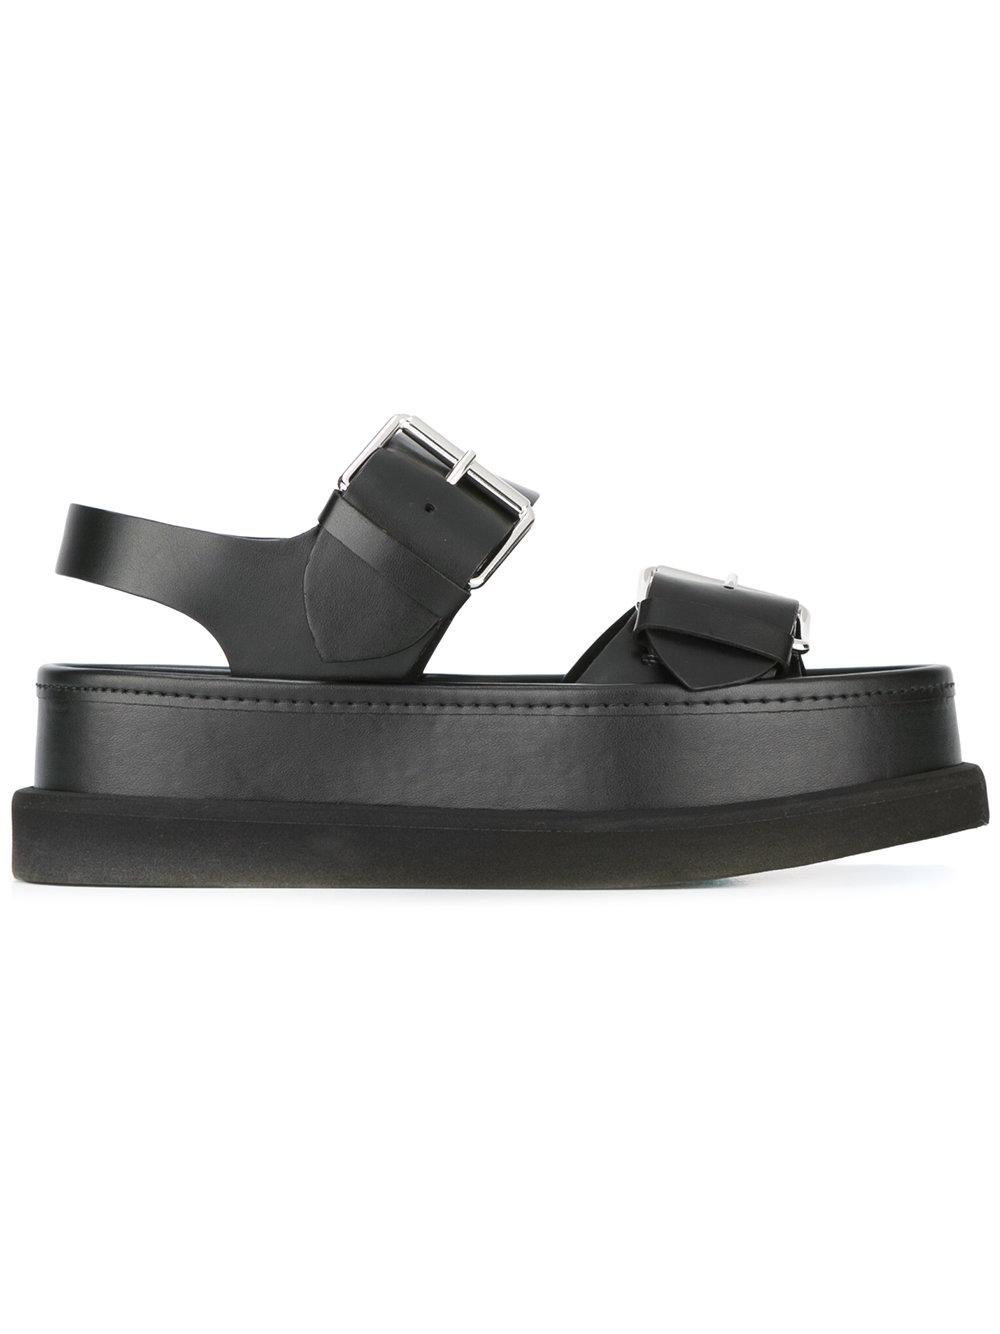 Stella Mccartney Platform Sandals In Black Lyst